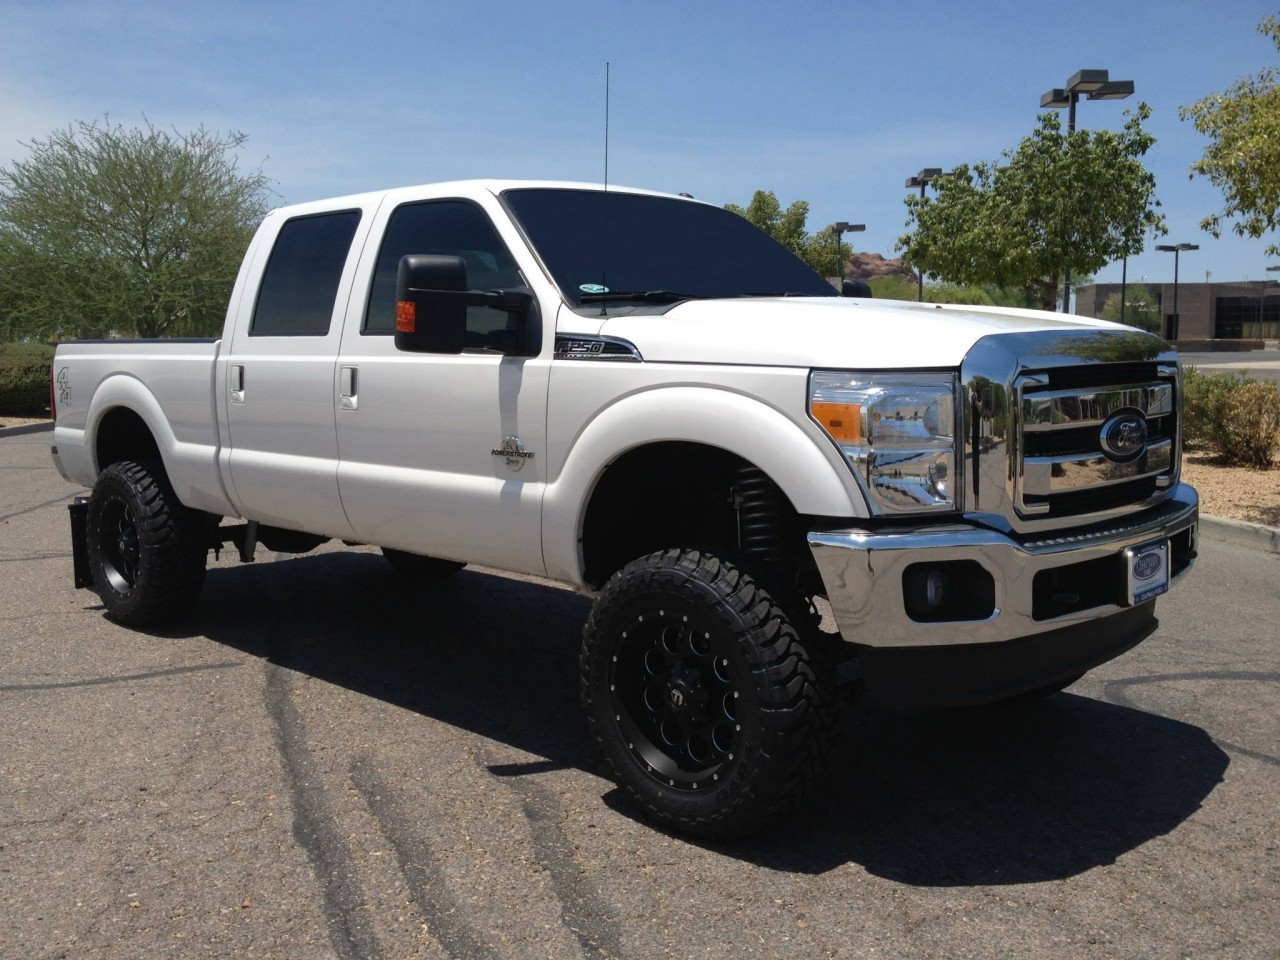 2013 ford f 250 6 mcgaughys lift kit 20x9 fuel wheels  [ 1280 x 960 Pixel ]